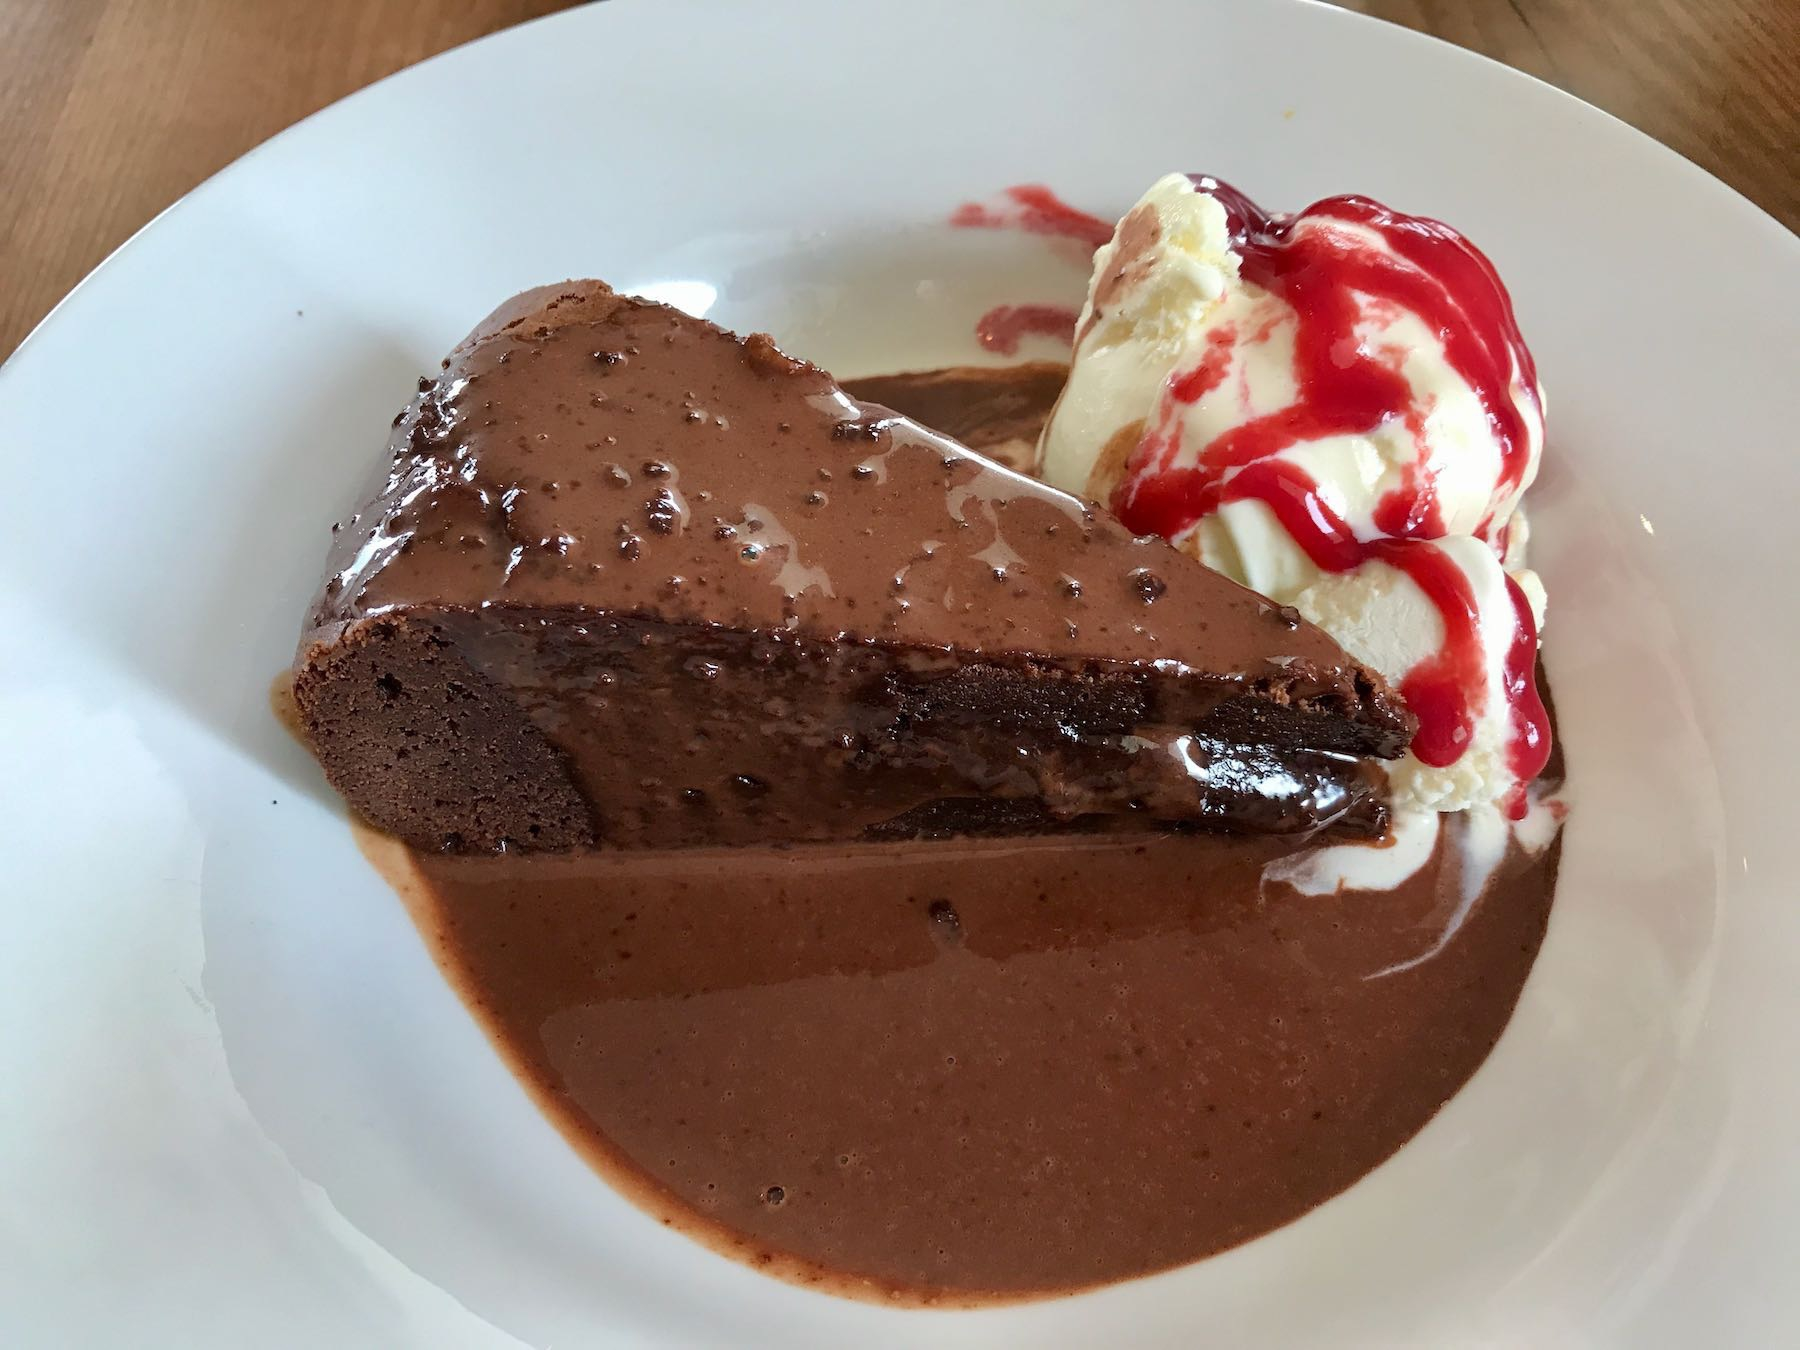 A white plate with a large slice of chocolate iced chocolate cake and a scoop of ice cream.